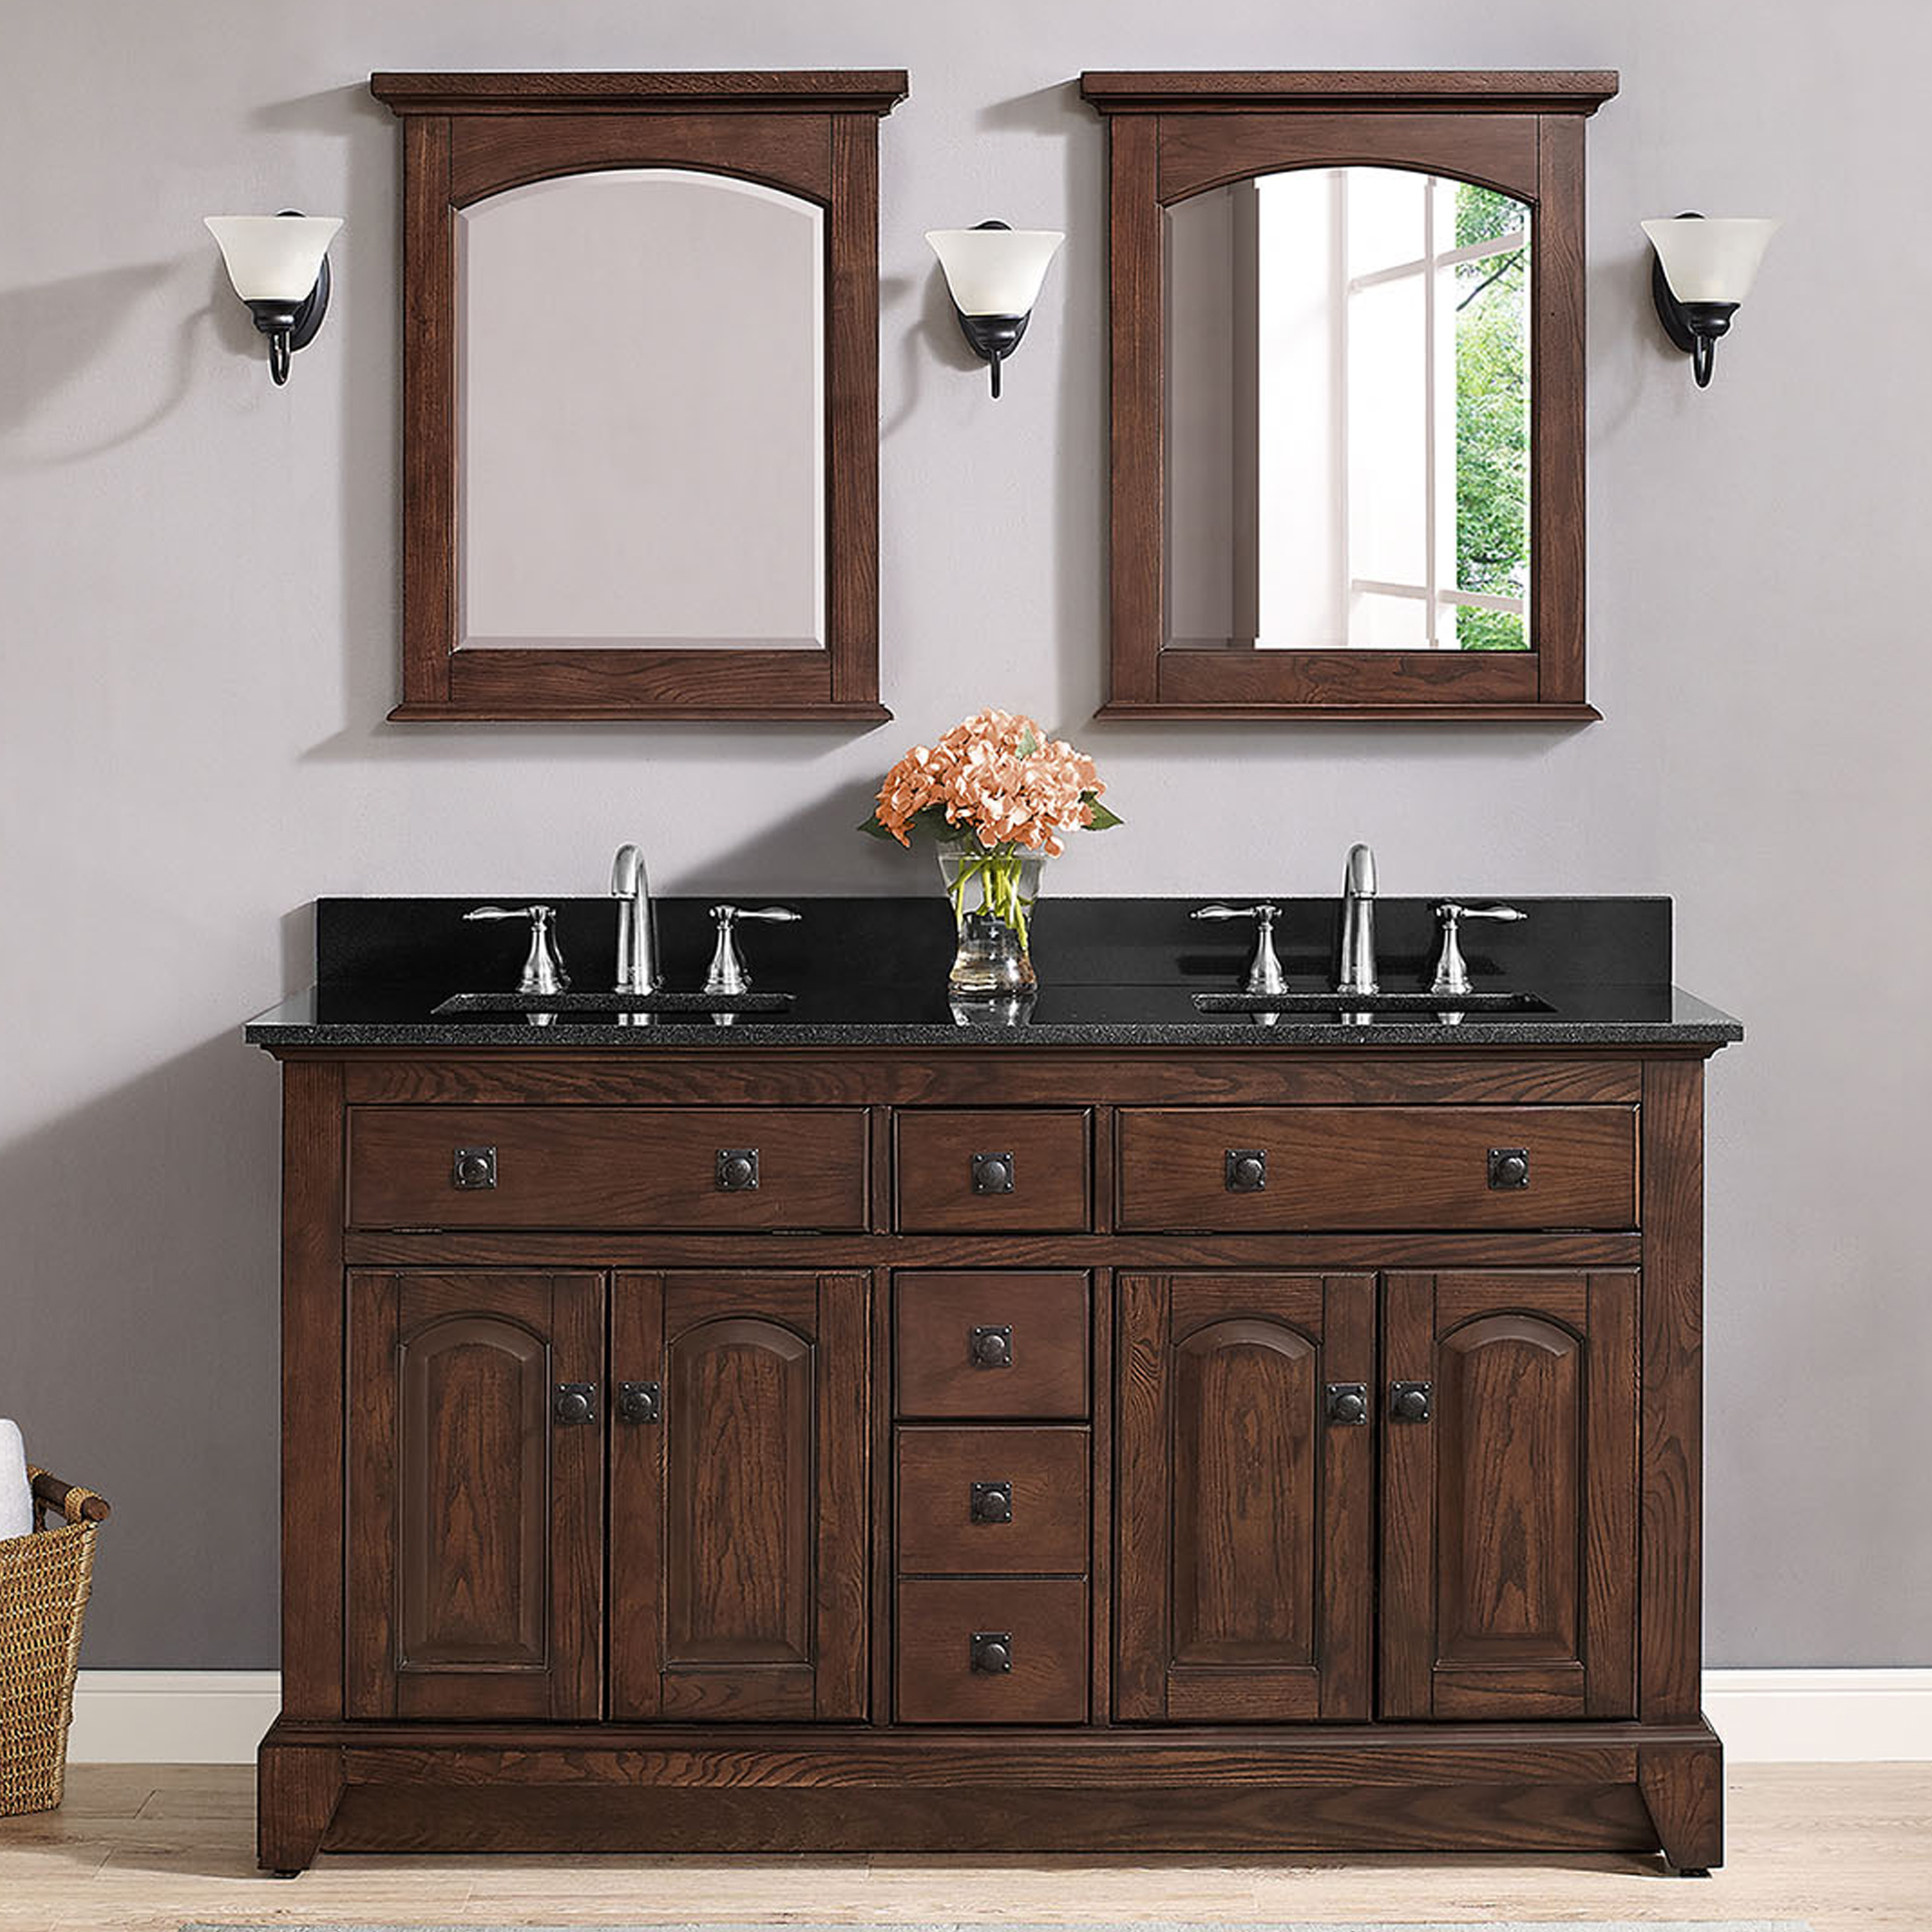 "60"" Traditional Bathroom Vanity - English Chestnut Finish with Top and Mirror Options"